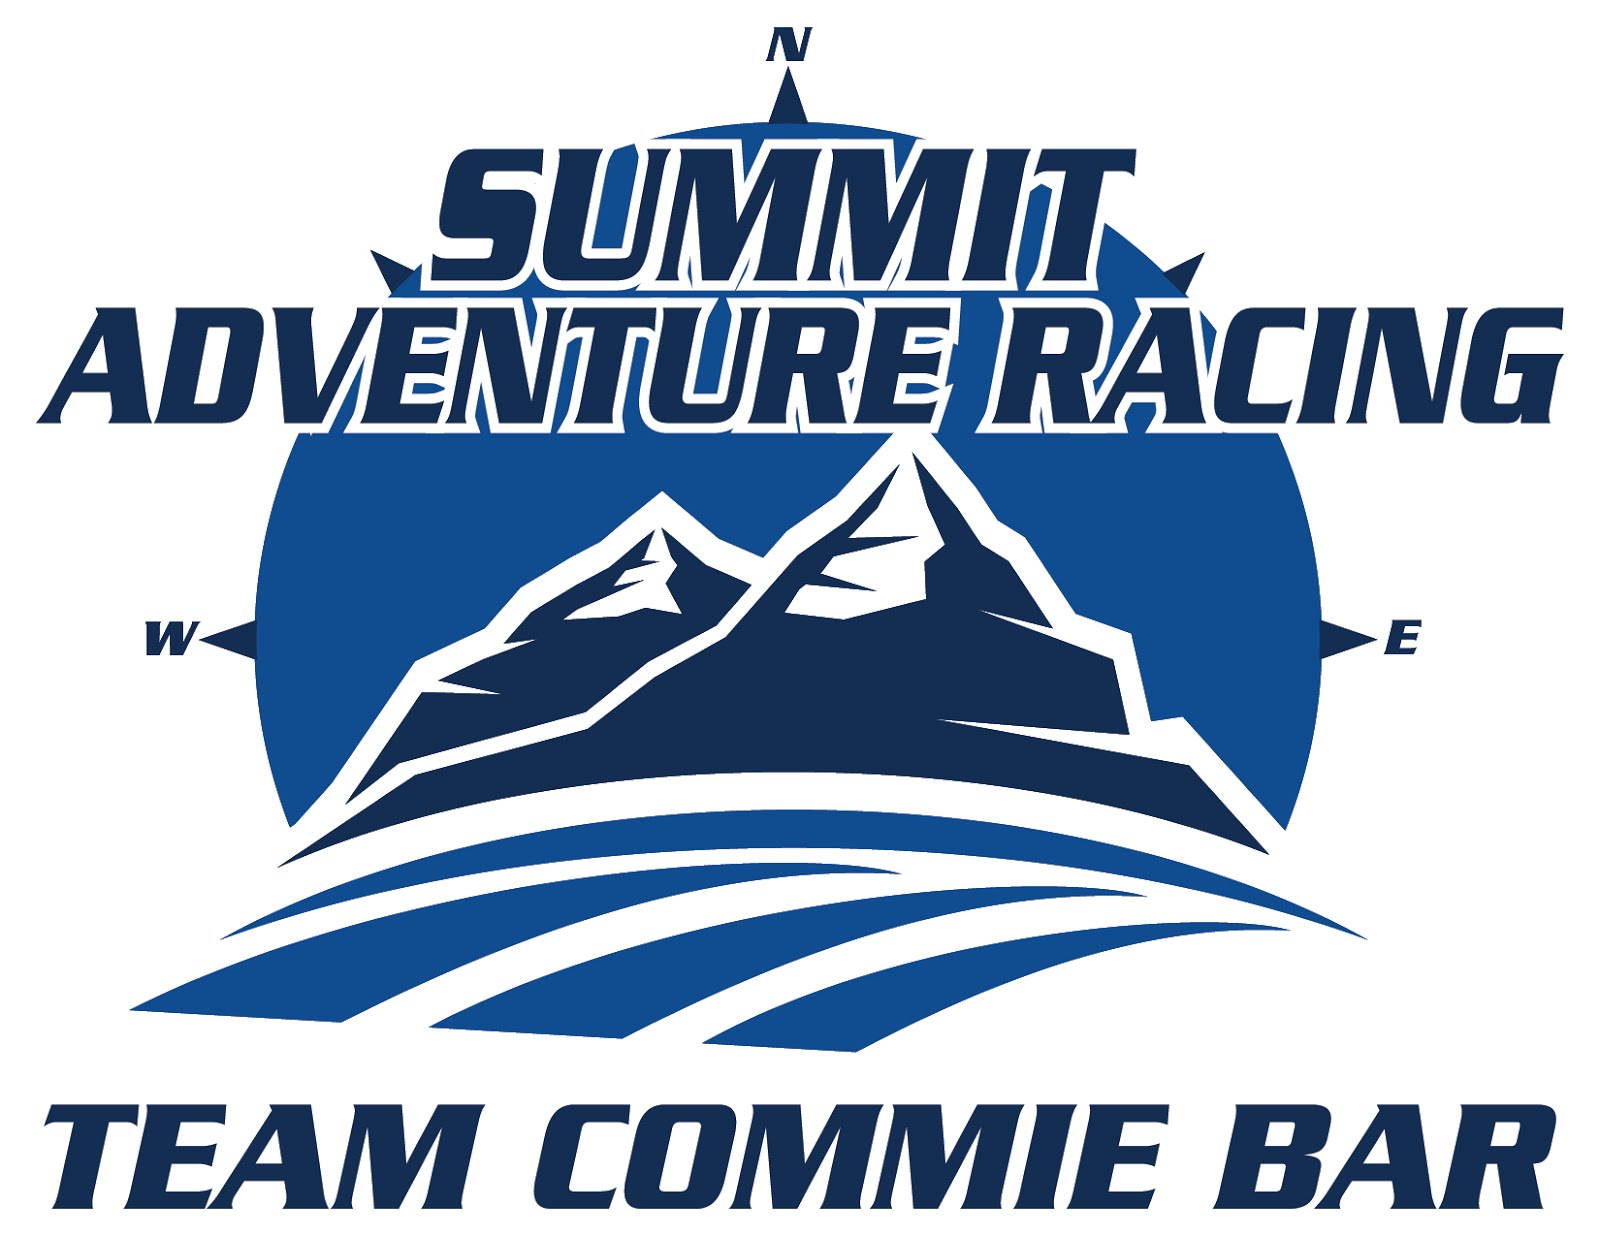 Team Commie Bar Adventure Racing